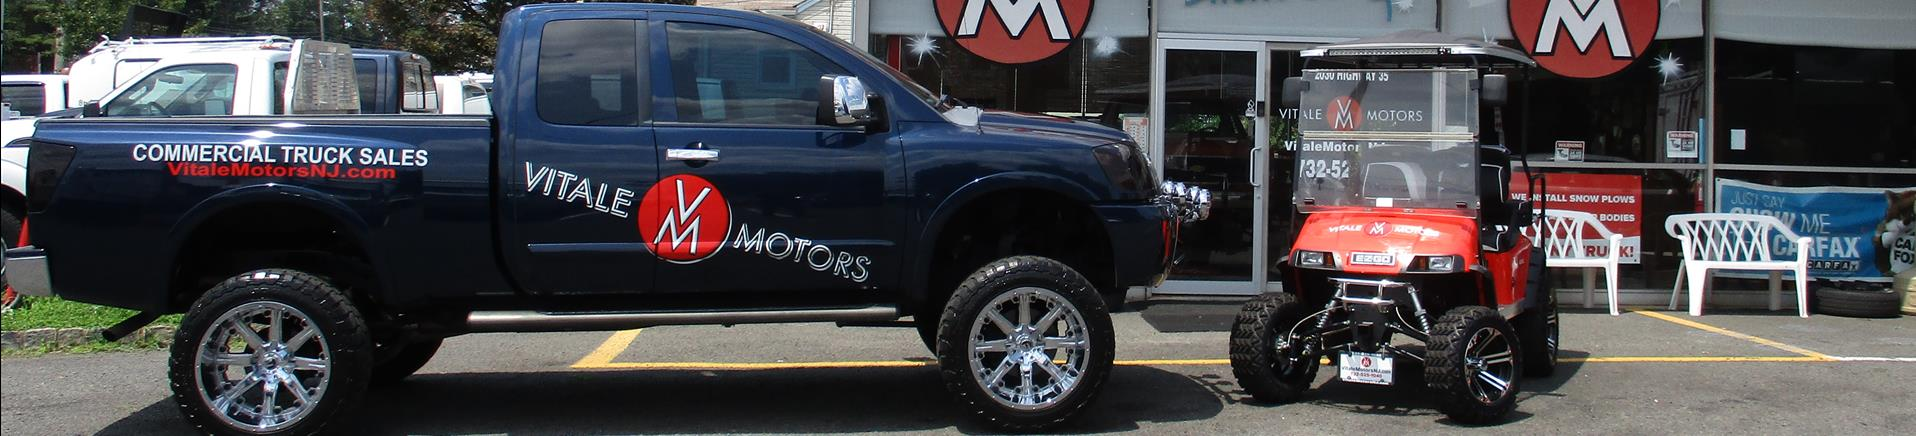 WE SPECIALIZE IN COMMERCIAL VEHICLES, ALL MAKES MODELS & UPFITS !!